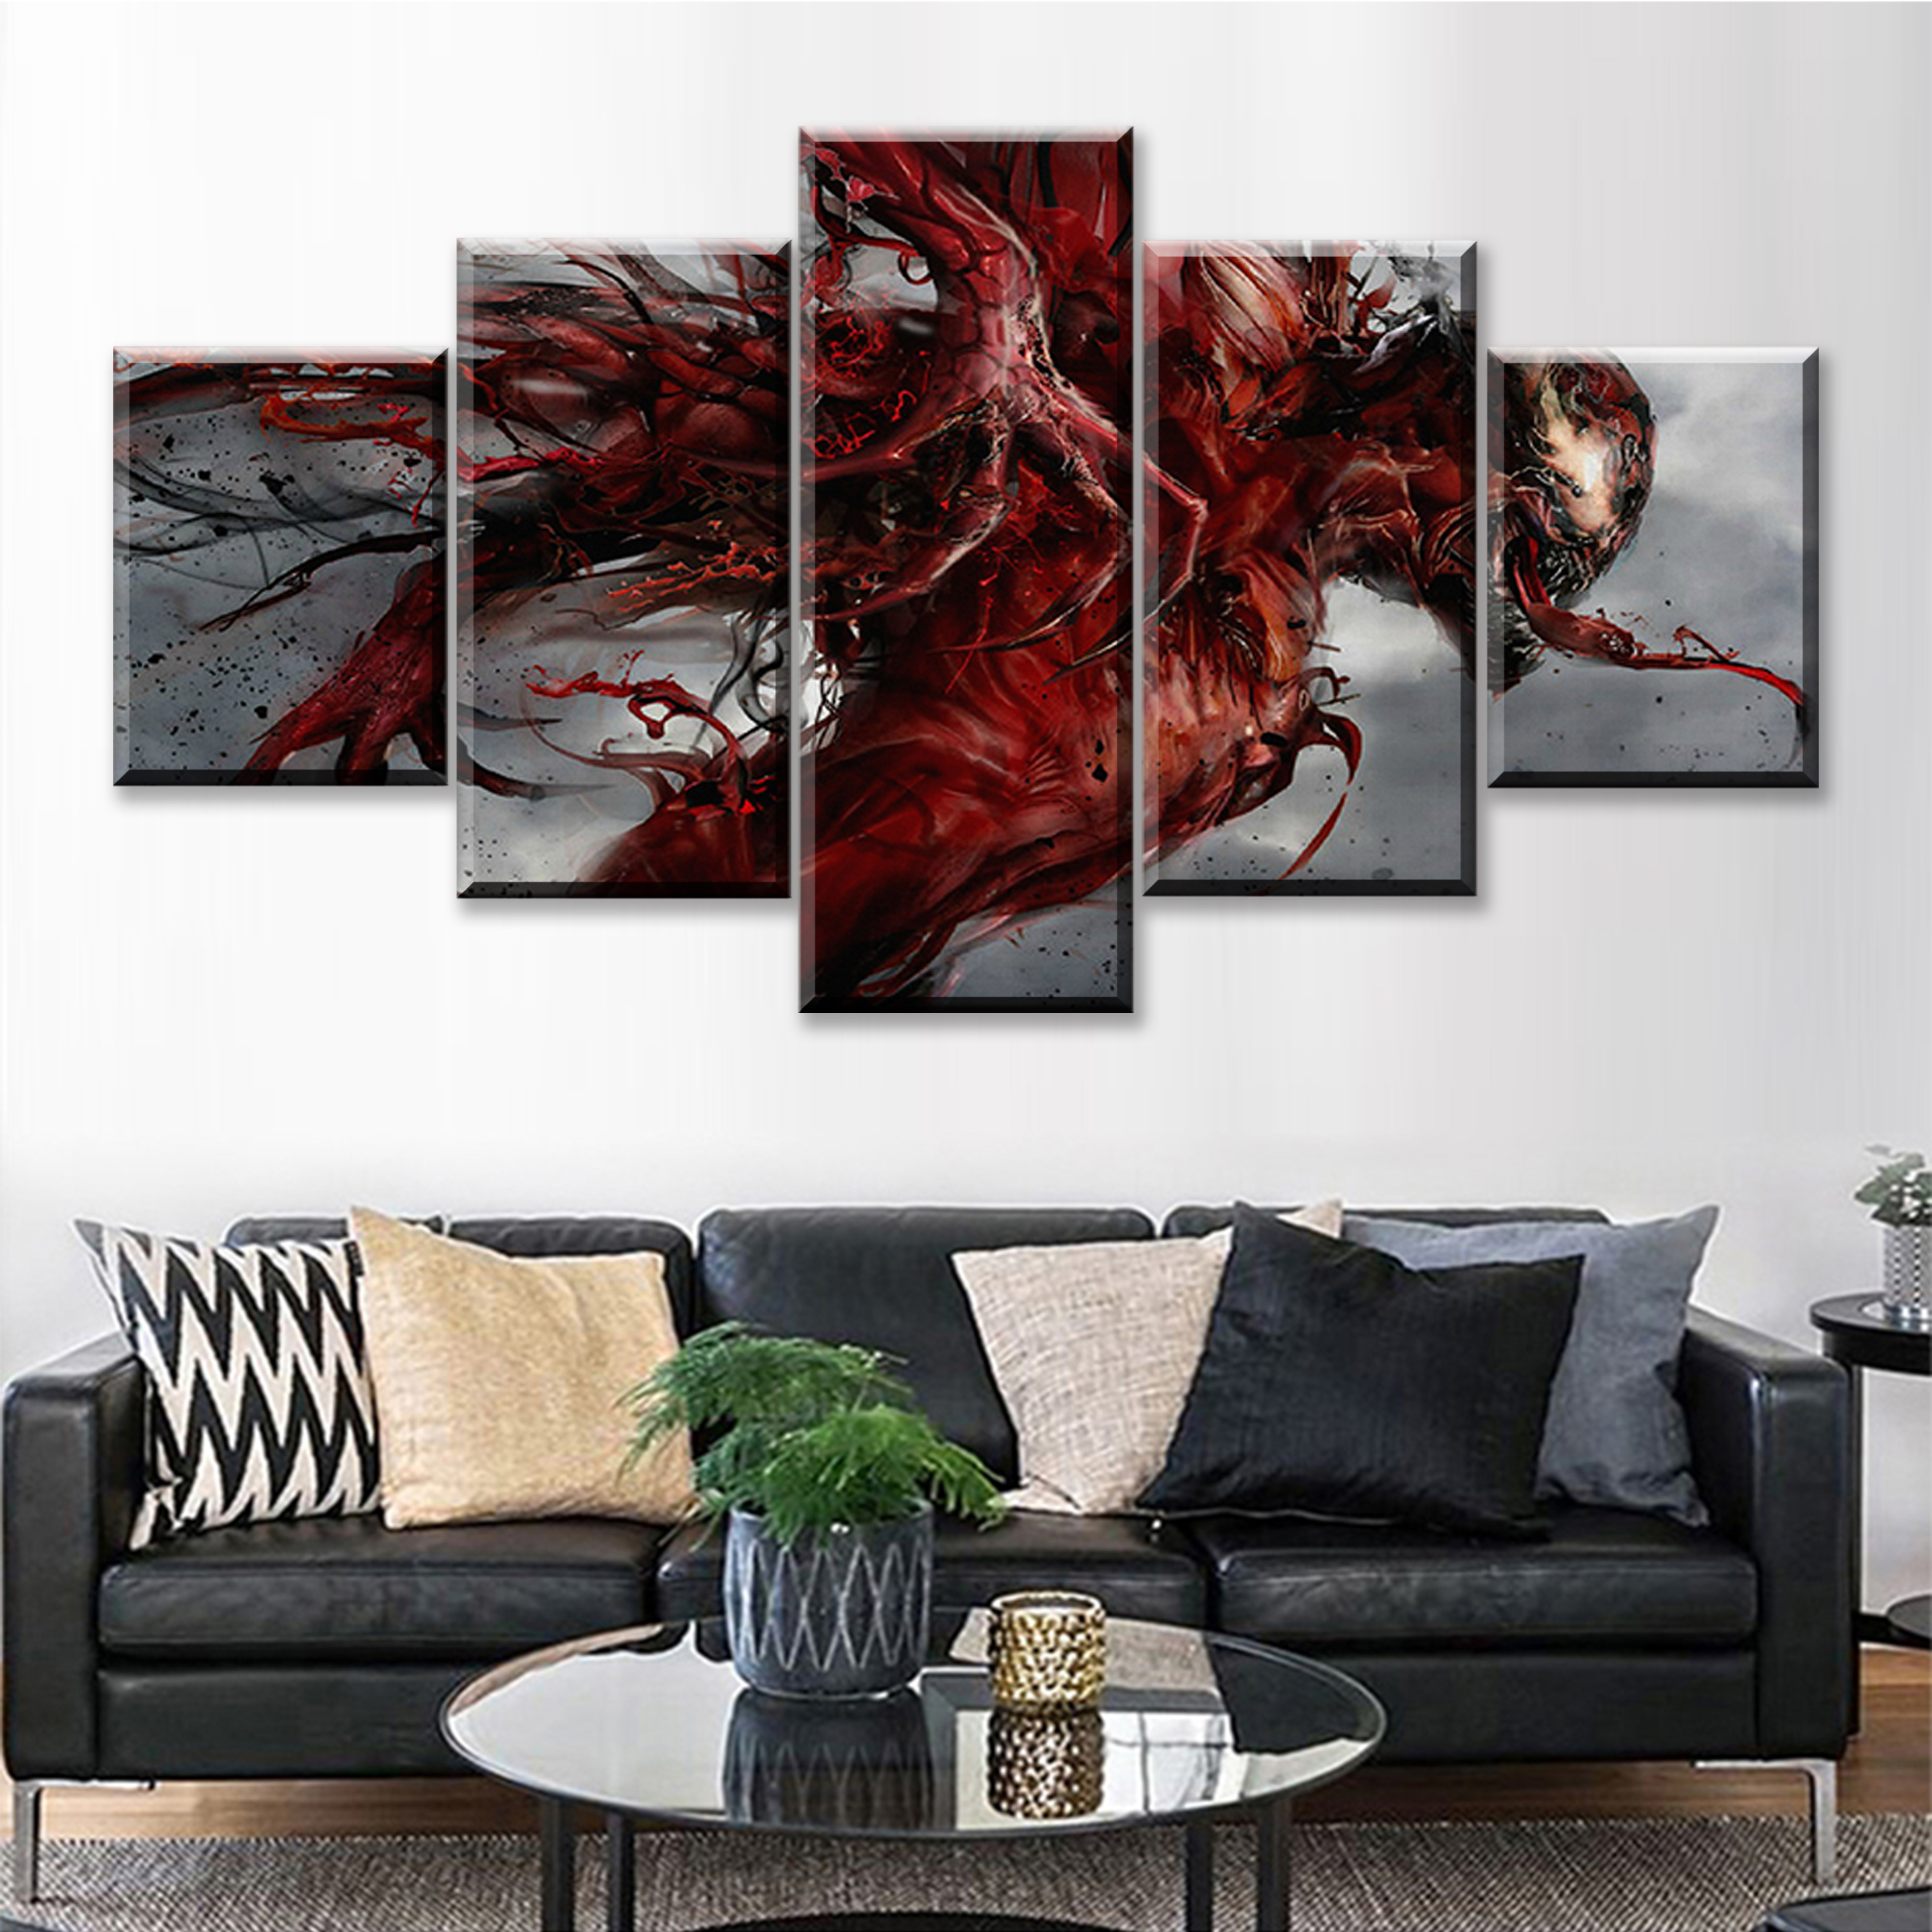 Modular Canvas HD Printed Painting Frame Modern Pictures Home Decor 5 Panels Movie Characters Poster Wall Artwork